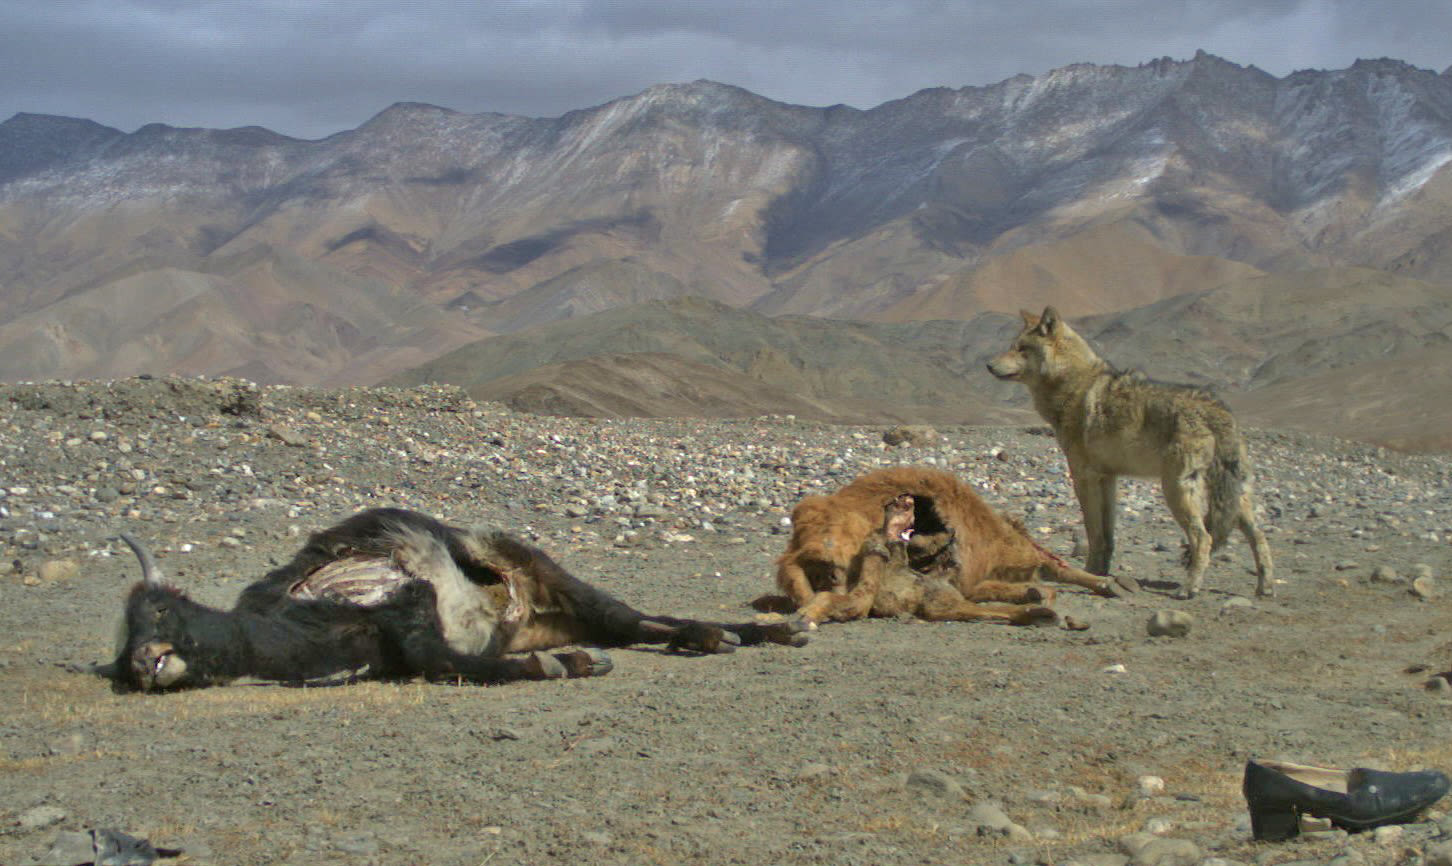 A wolf scavenges on dead cattle around the village of Hanle. Though they are excellent hunters, the wolves will not forgo access to a quick meal. Photo: Subhashini Krishnan